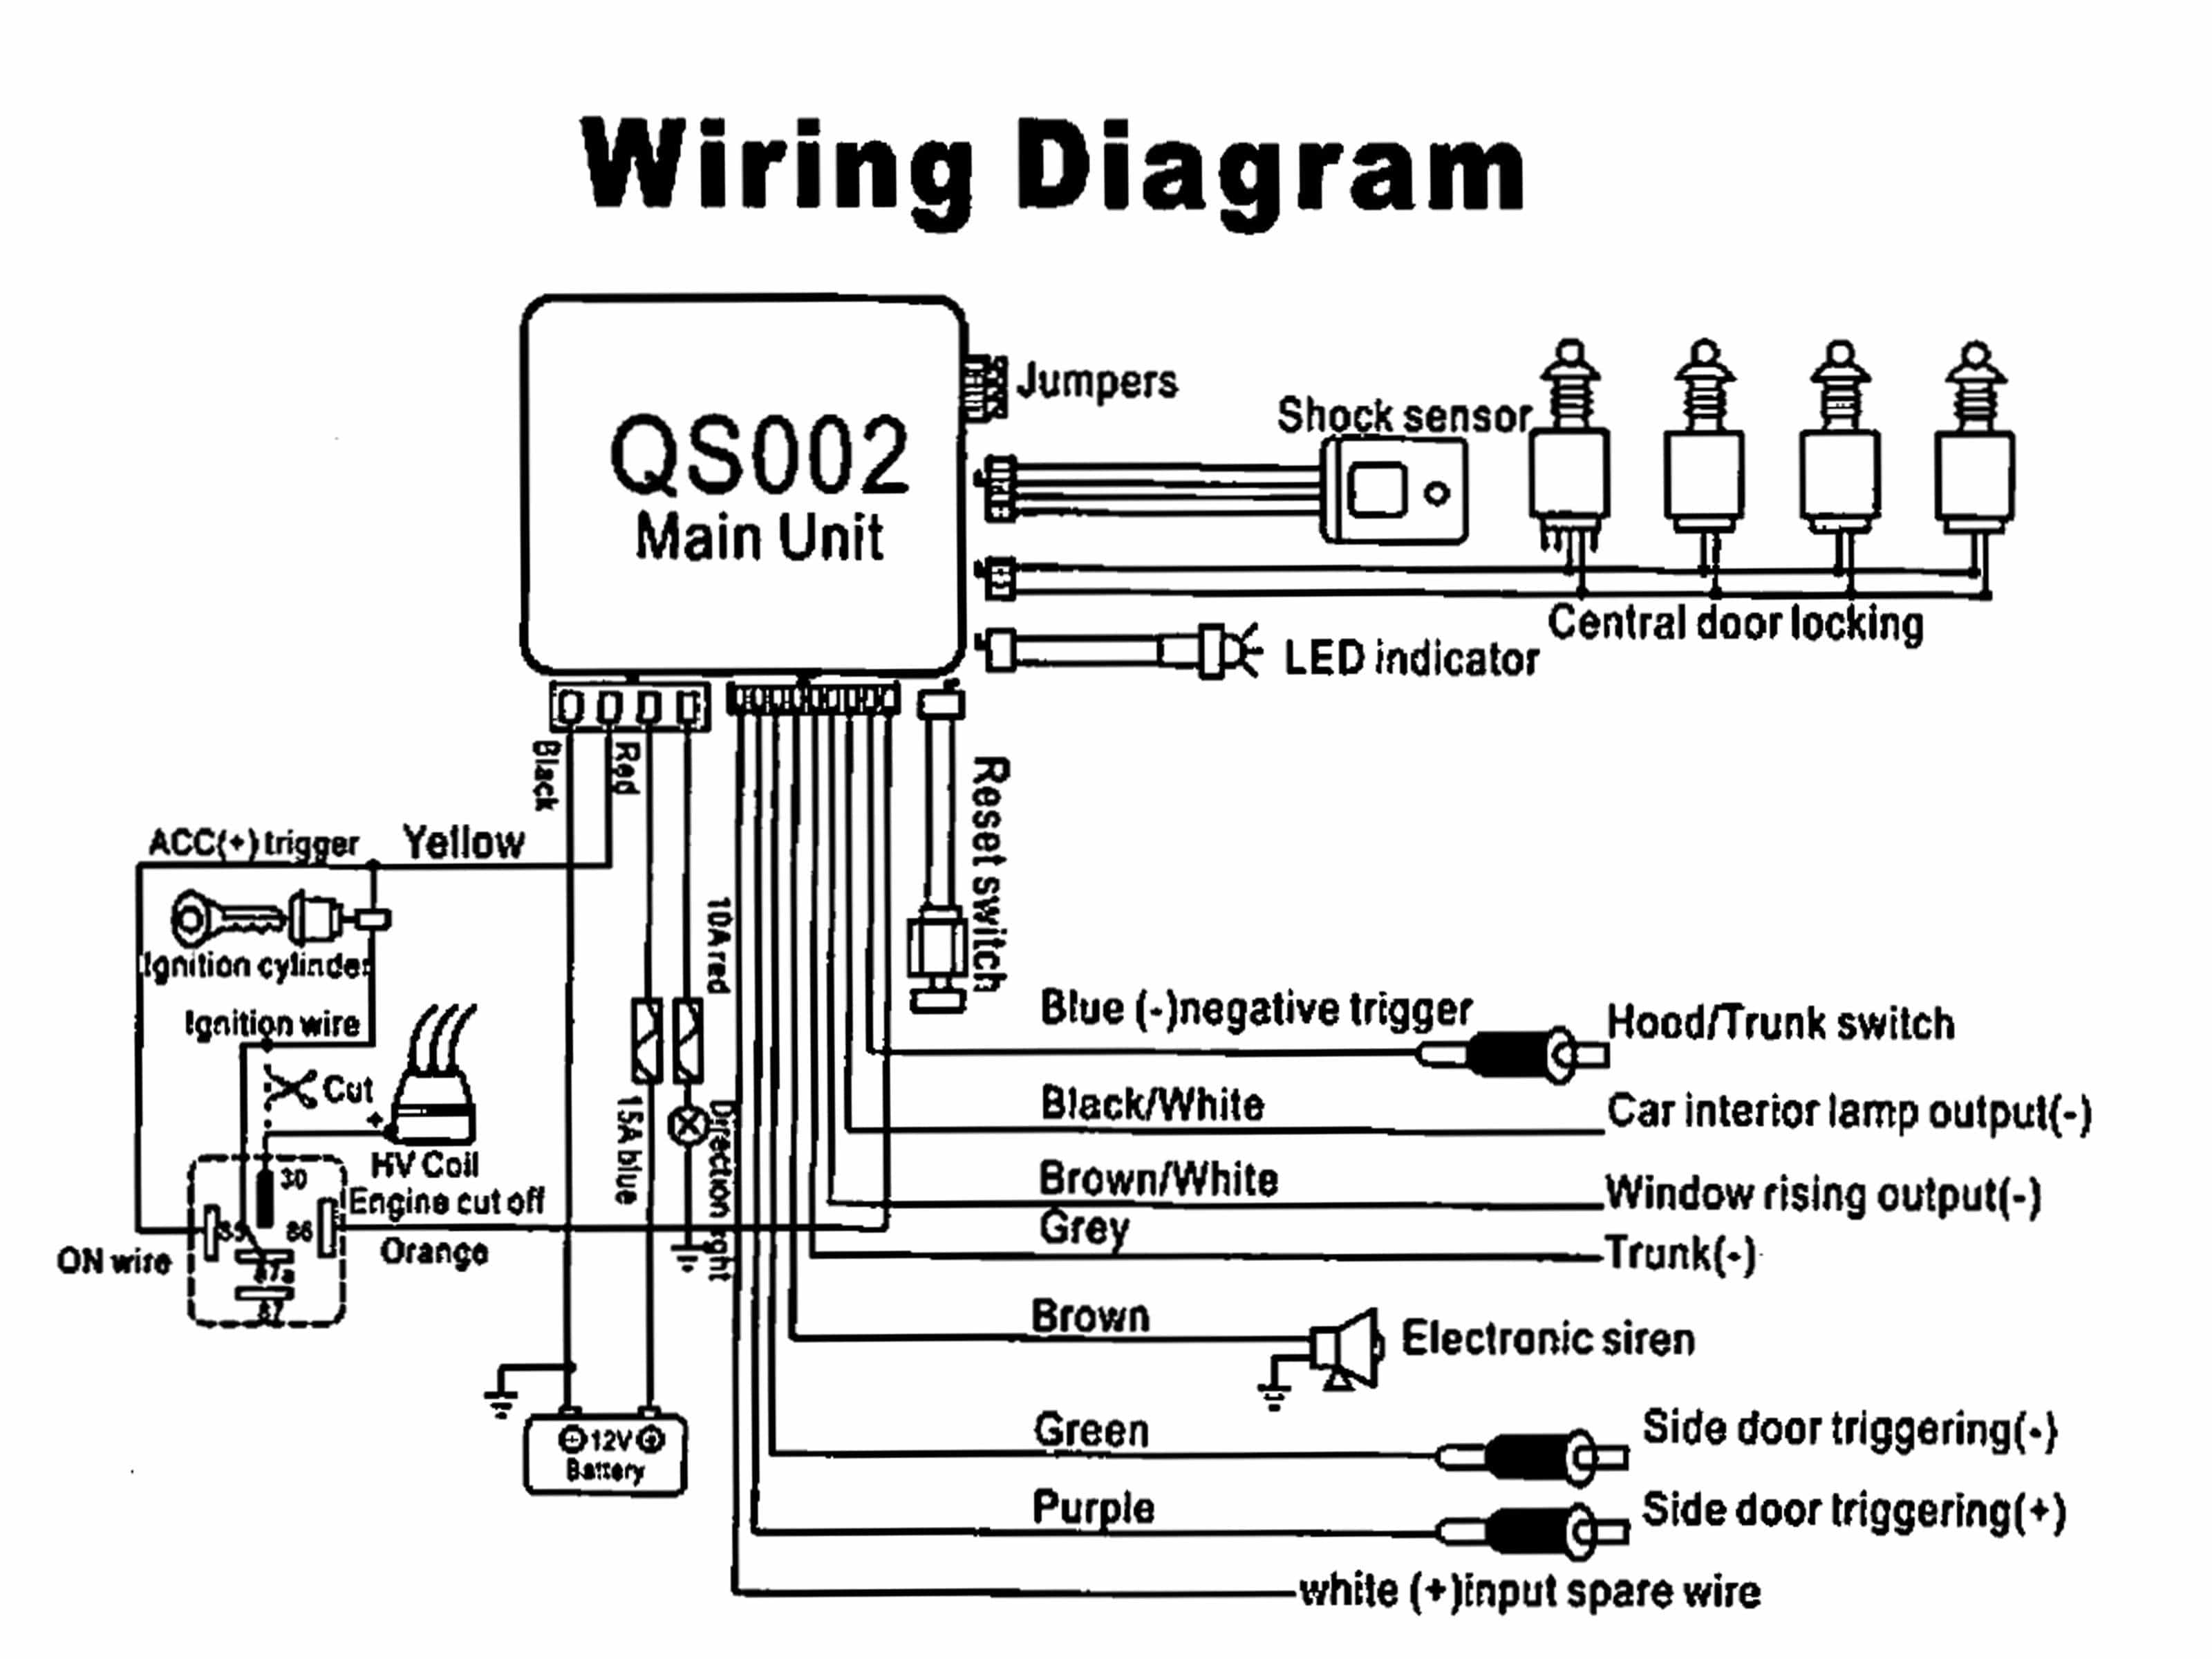 AlarmInstructions_7a98a2bc d189 4c5b 99b3 c774abdbef28 clarion cmd5 wiring diagram wiring diagram shrutiradio  at gsmx.co